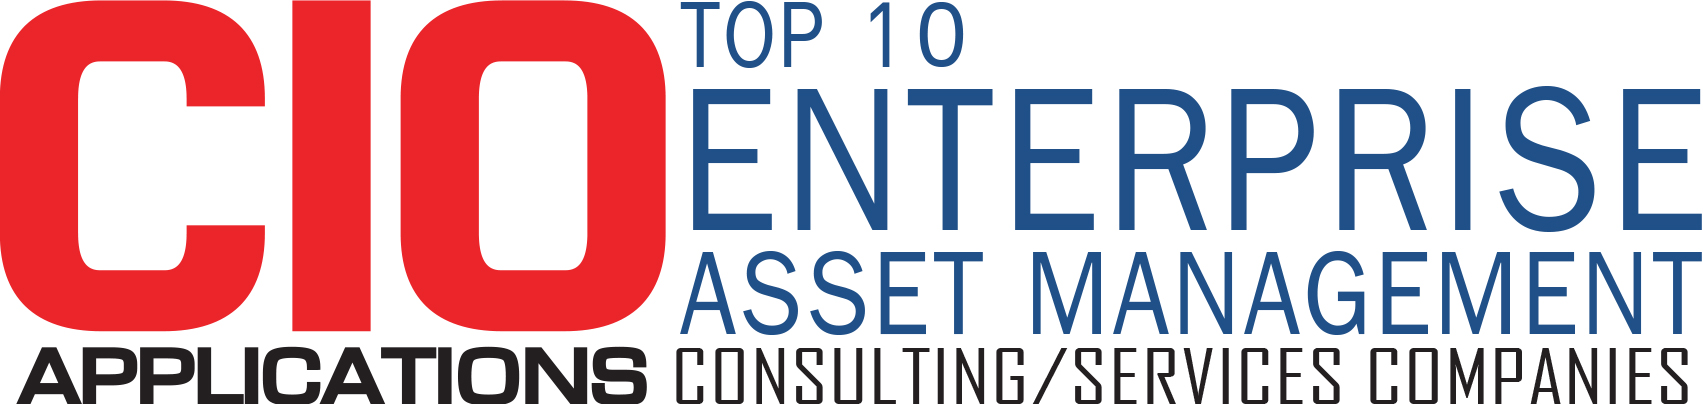 Top 10 Enterprise Asset Management Consulting/Services Companies - 2018